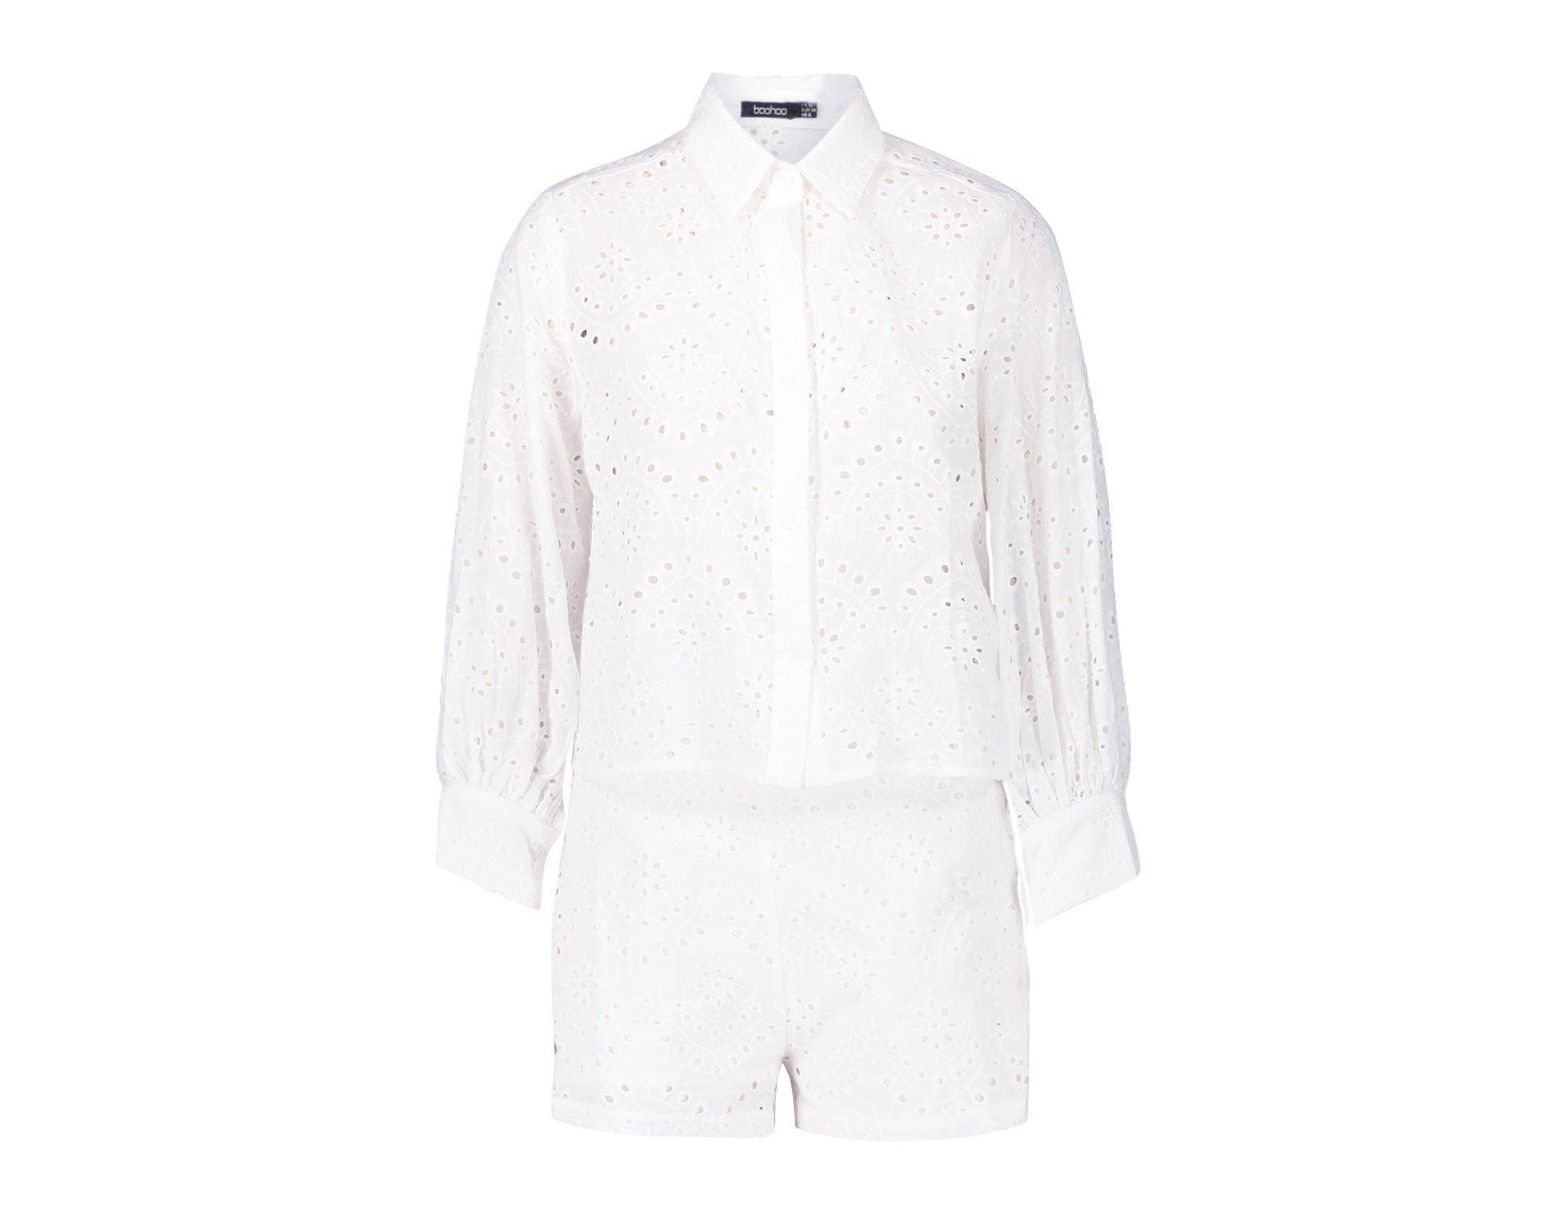 2d390fd7f446 Boohoo Broderie Anglaise Shirt + Short Co-ord in White - Lyst